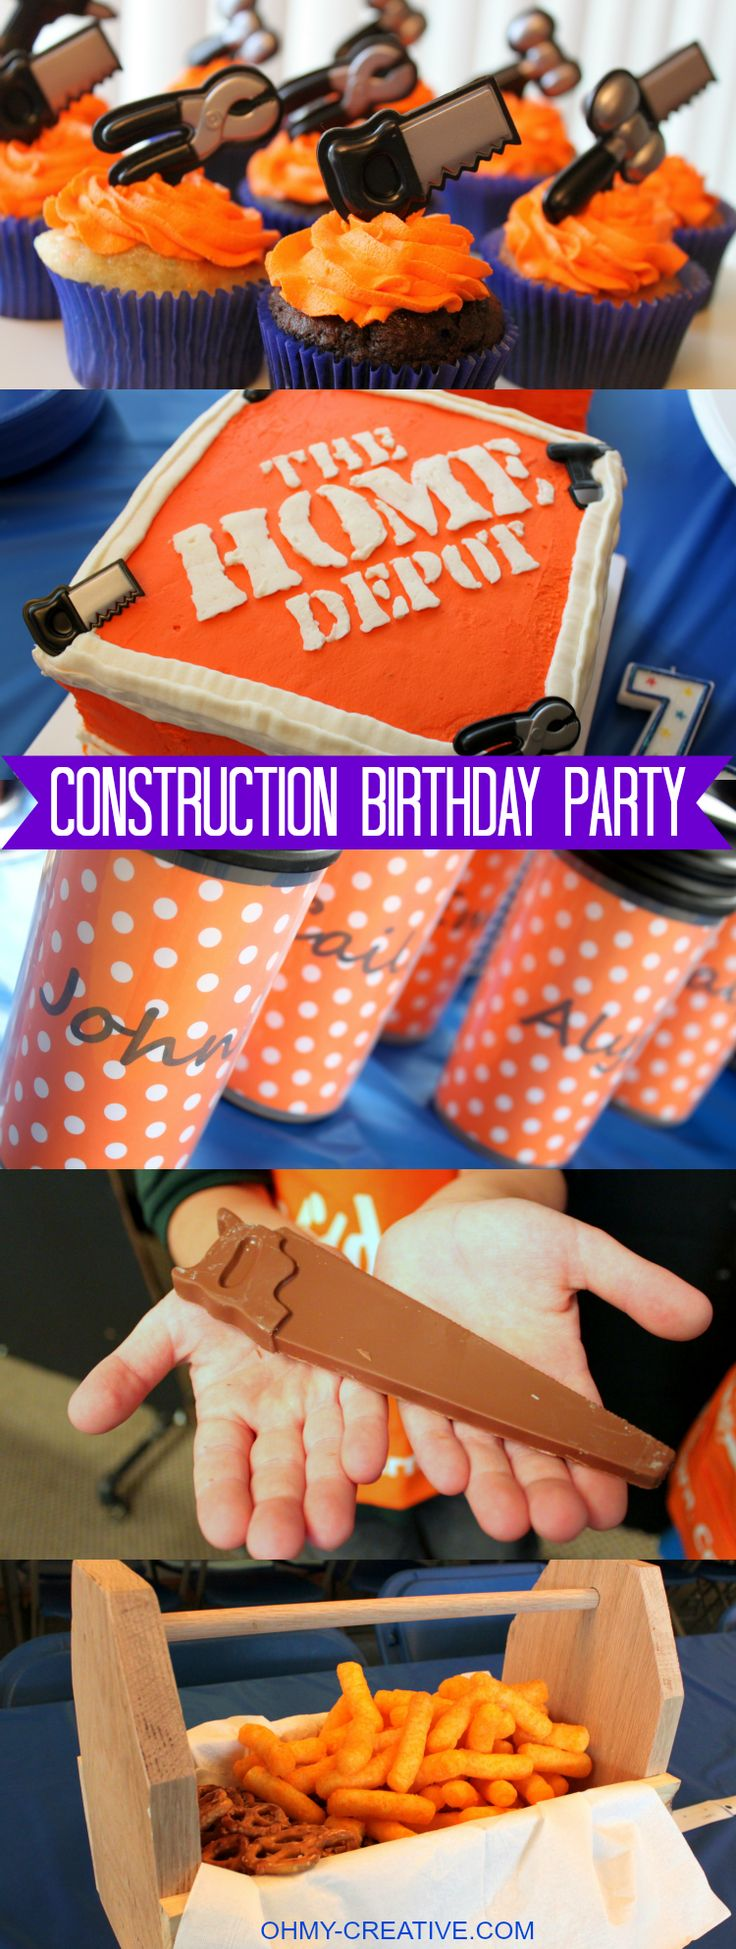 Home Depot Construction Birthday Party - a perfect party theme for the young and old alike! Great ideas for decoration, party favors and dessert tables  |  OHMY-CREATIVE.COM